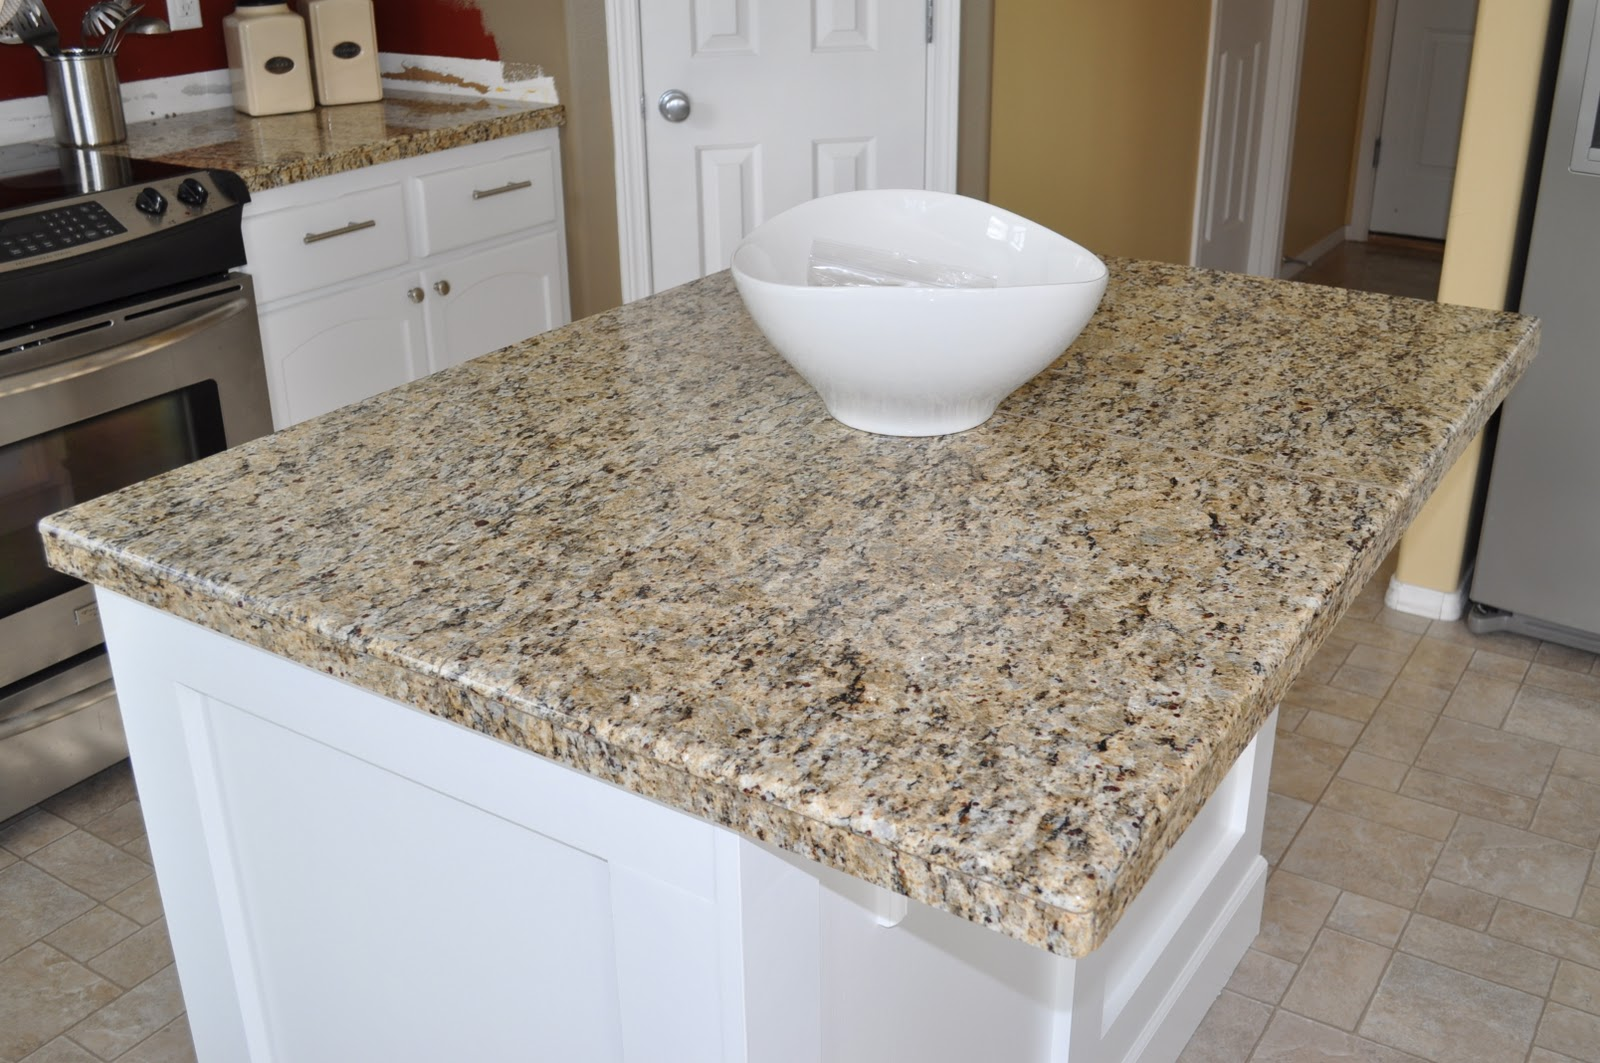 The dizzy house diy granite mini slabs undermount sink Granite kitchen countertops pictures